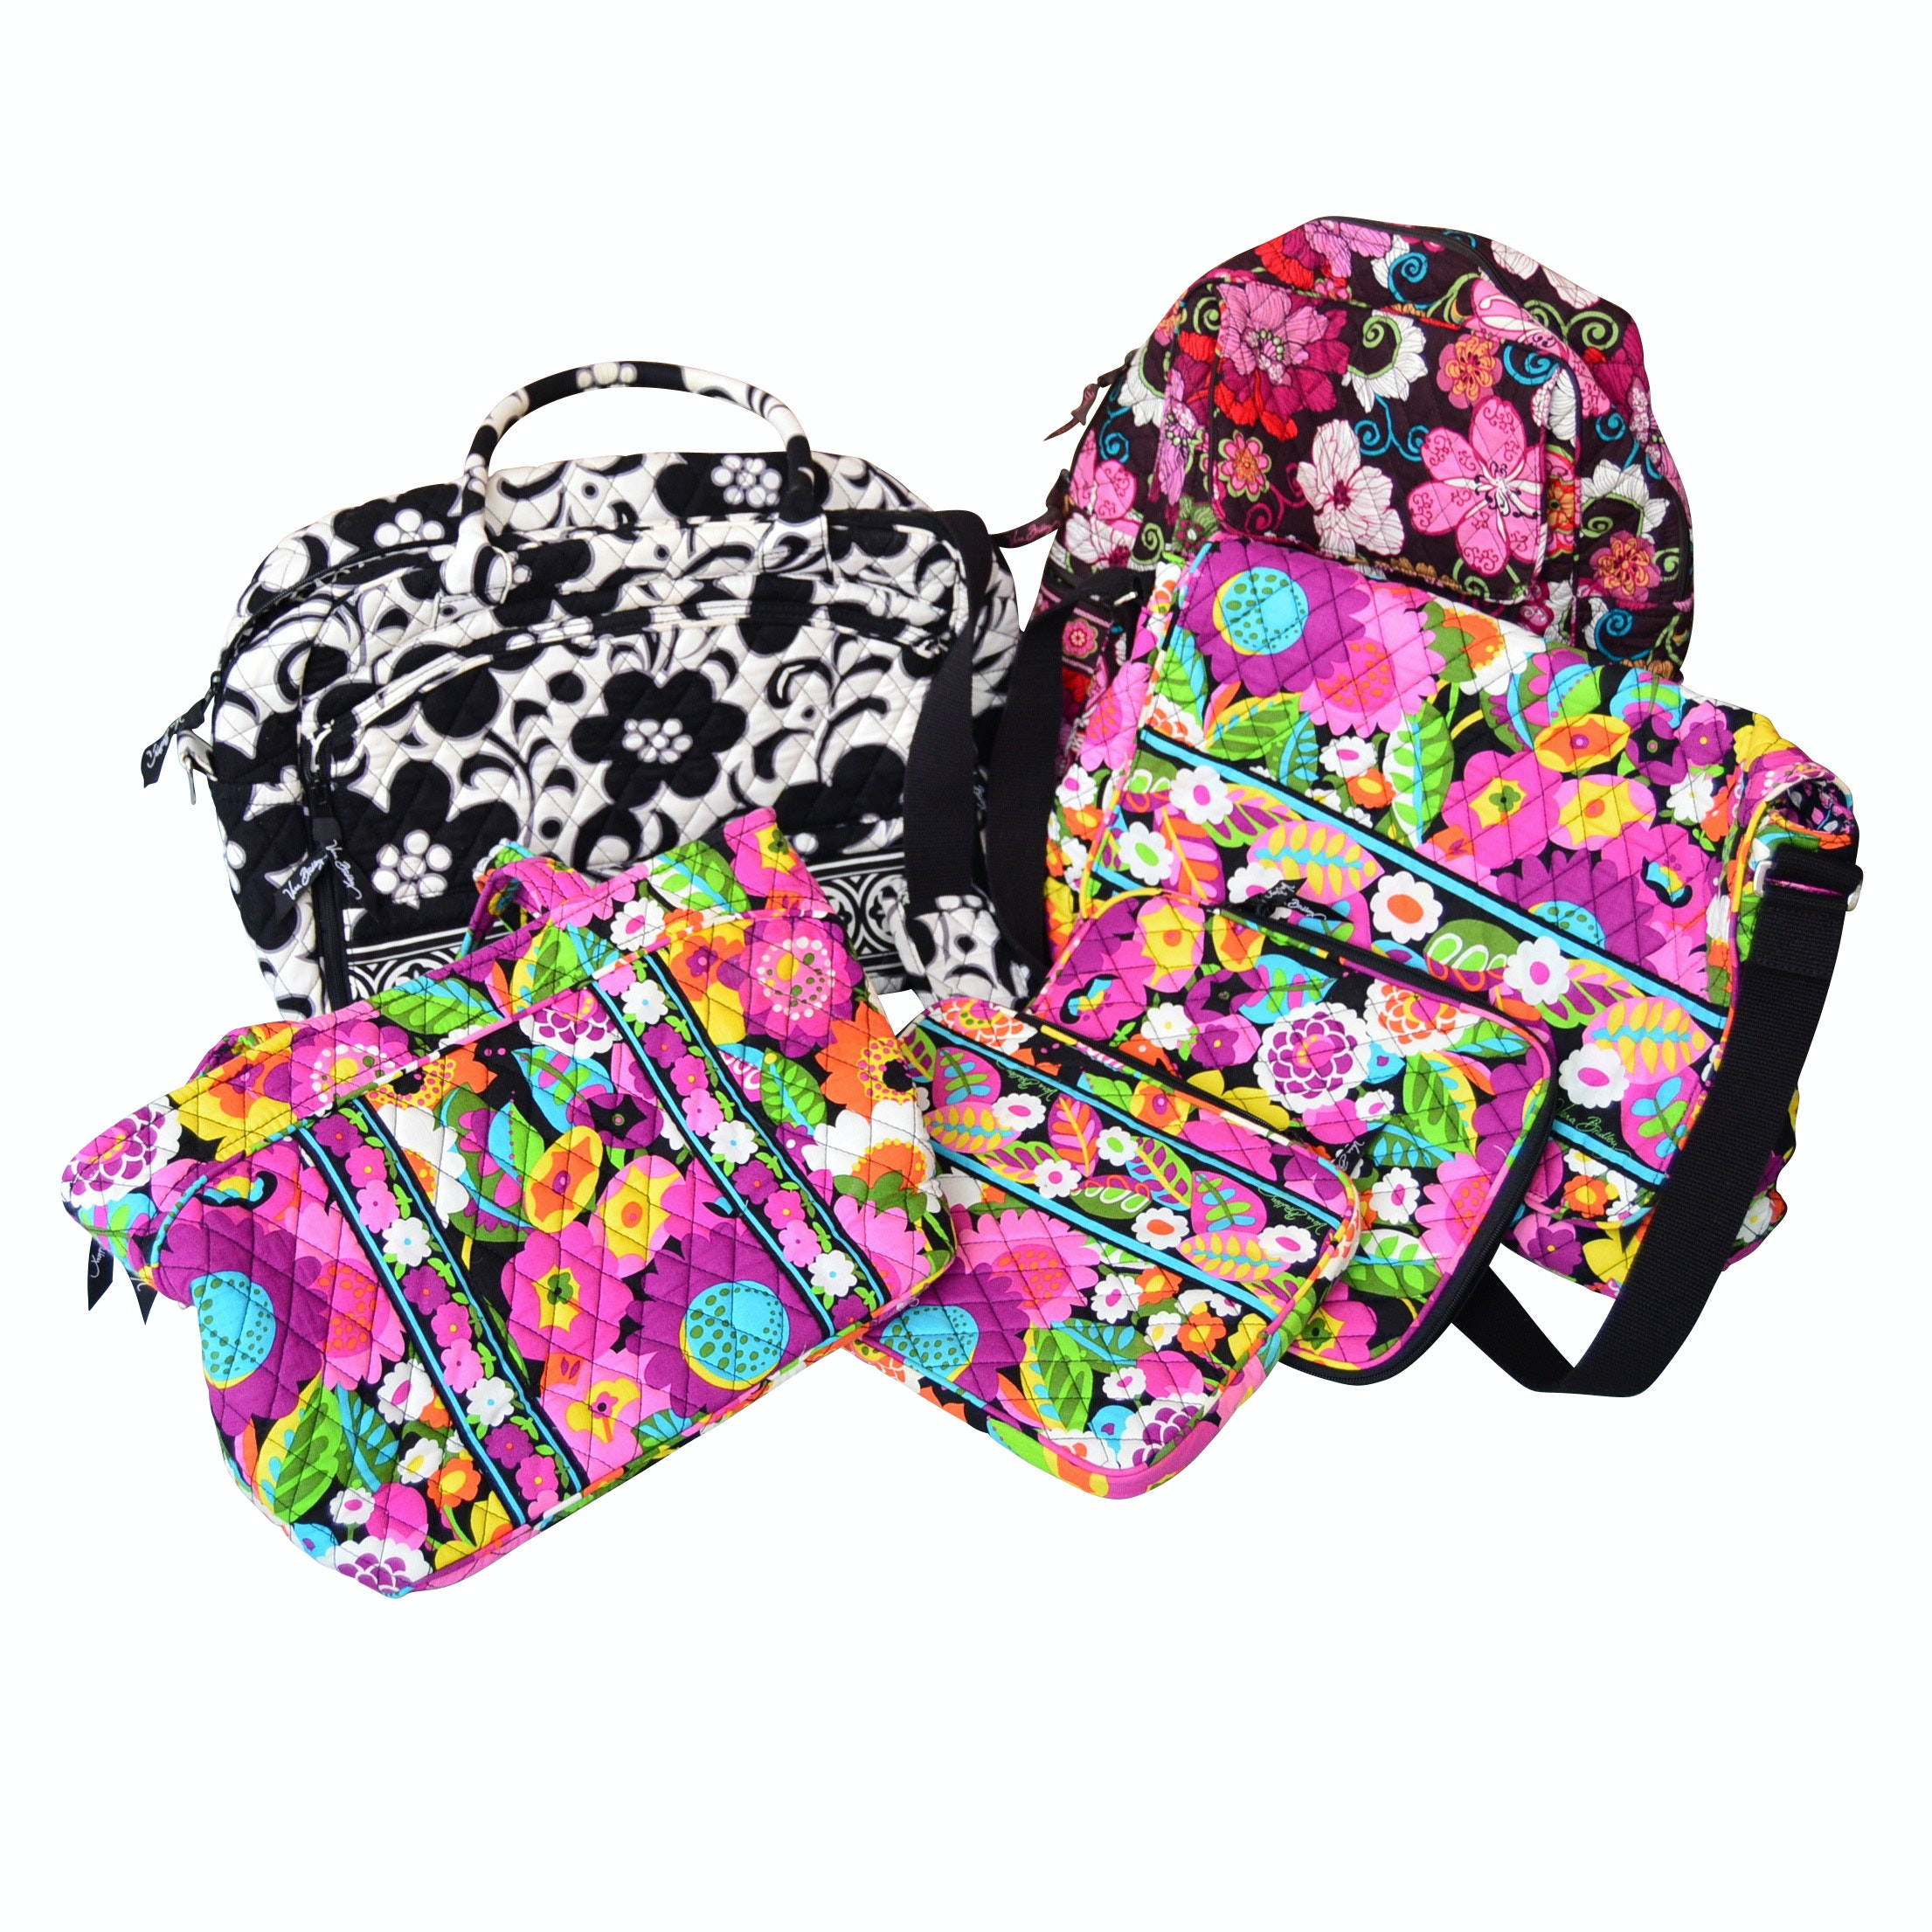 Vera Bradley Cotton Floral Totes, Makeup Bags, Backpack and Computer Bag